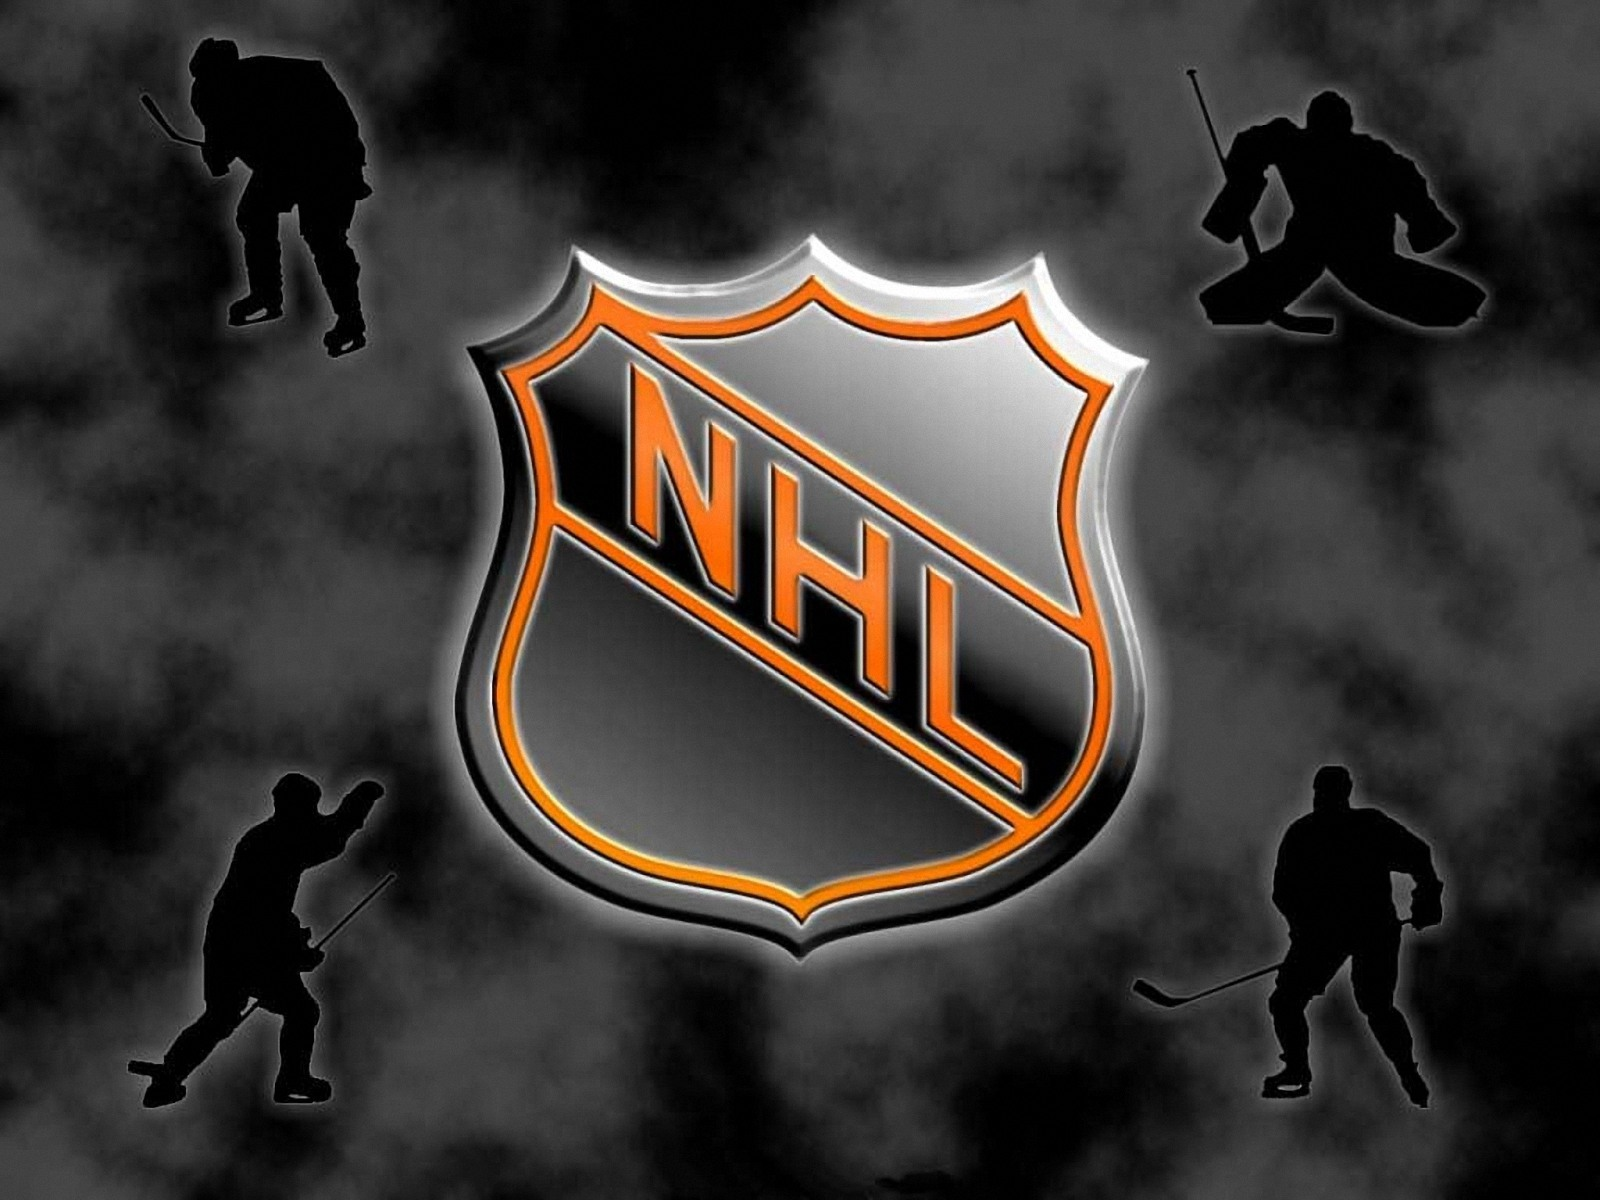 Ice Hockey NHL wallpaper 1600x1200 Wallpapers 1600x1200 1600x1200